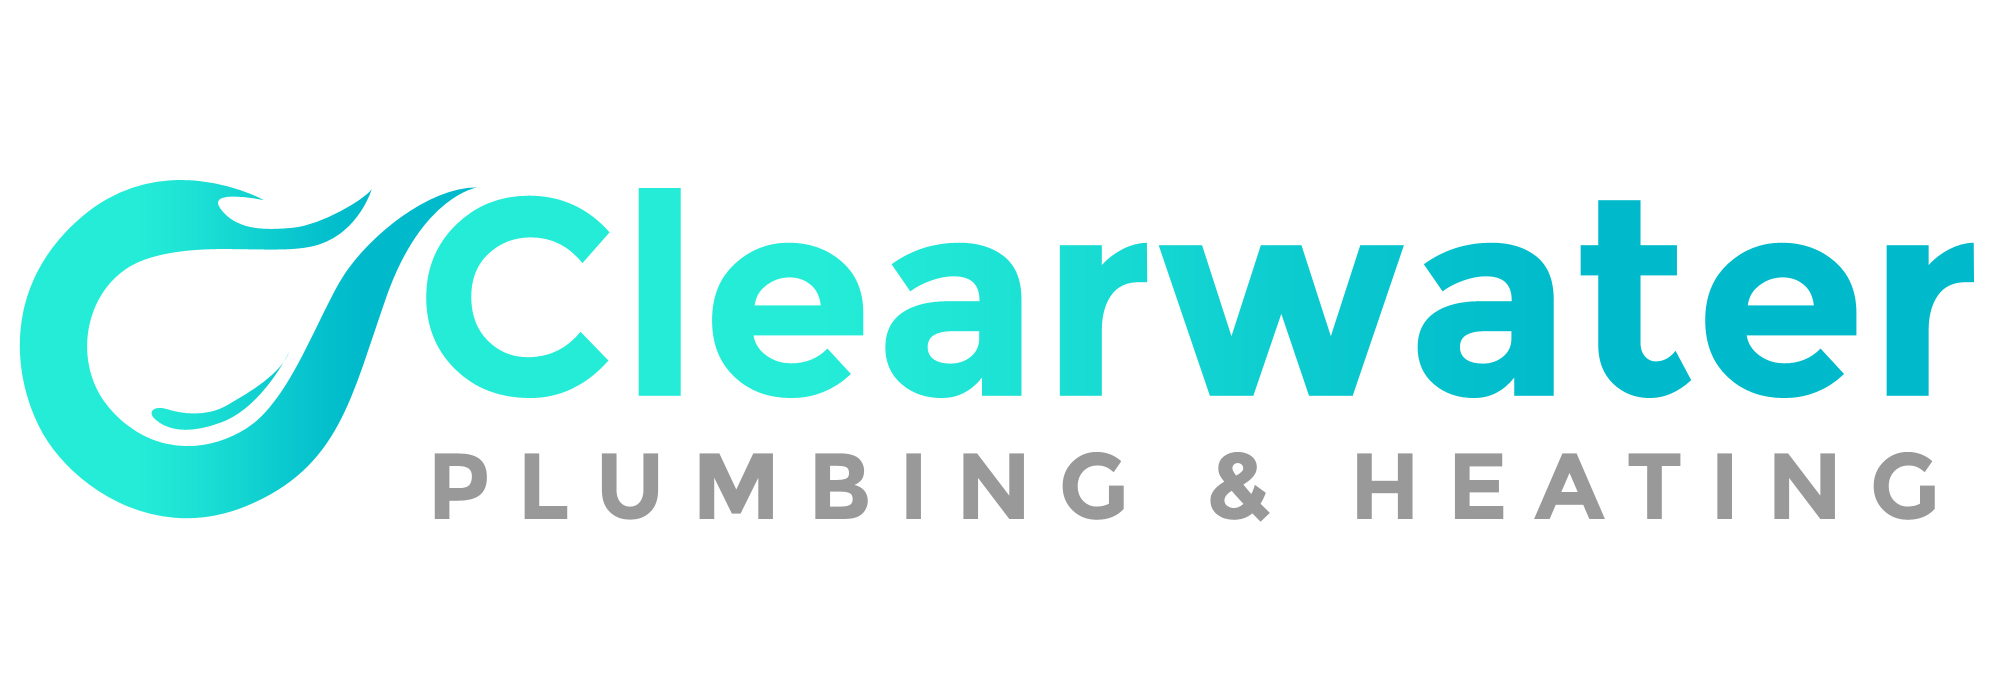 Clearwater Plumbing & Heating Verified Logo